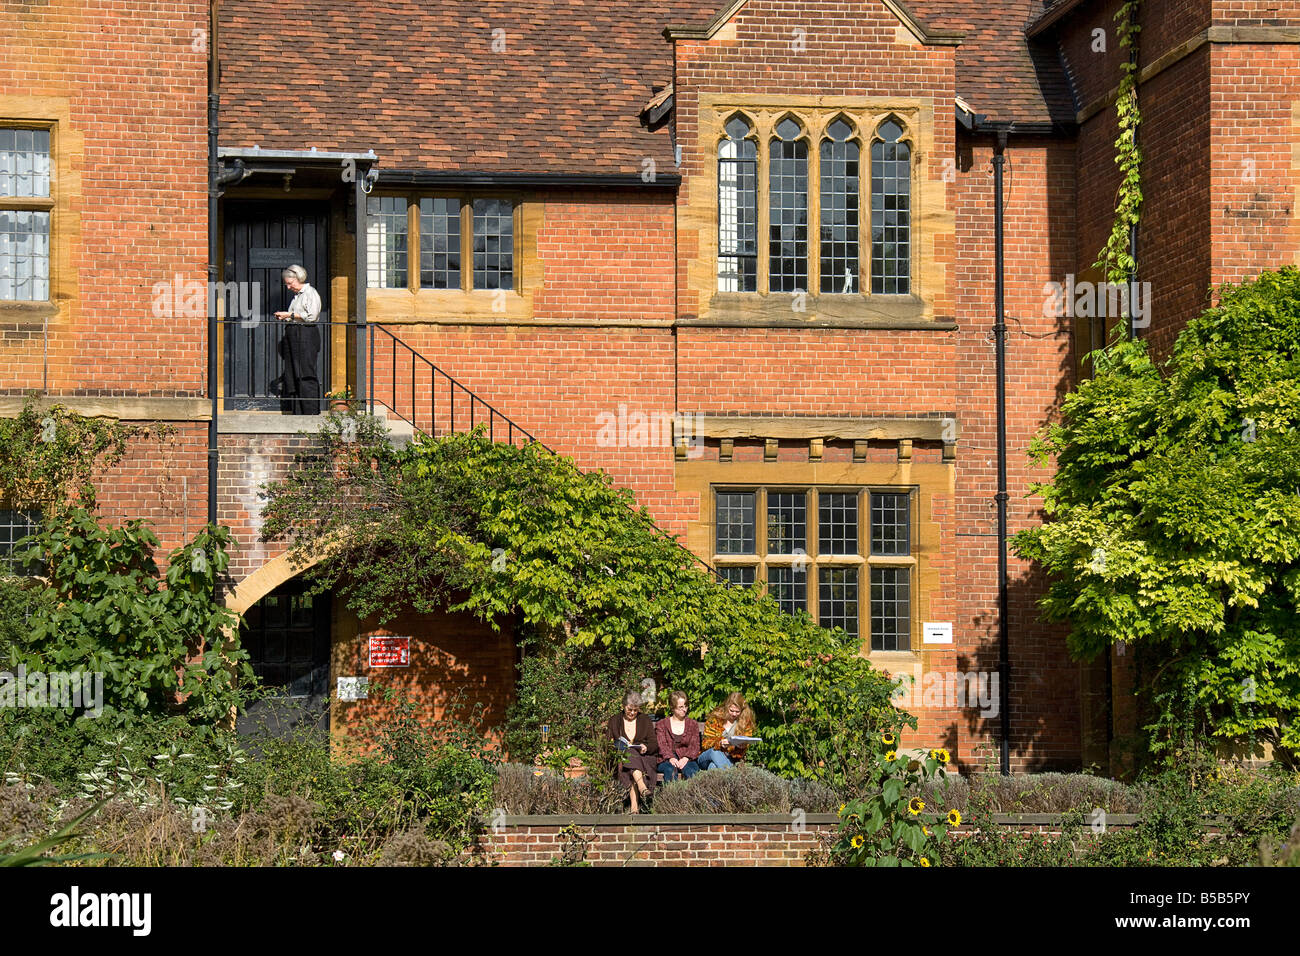 Westcott House from the grounds. - Stock Image